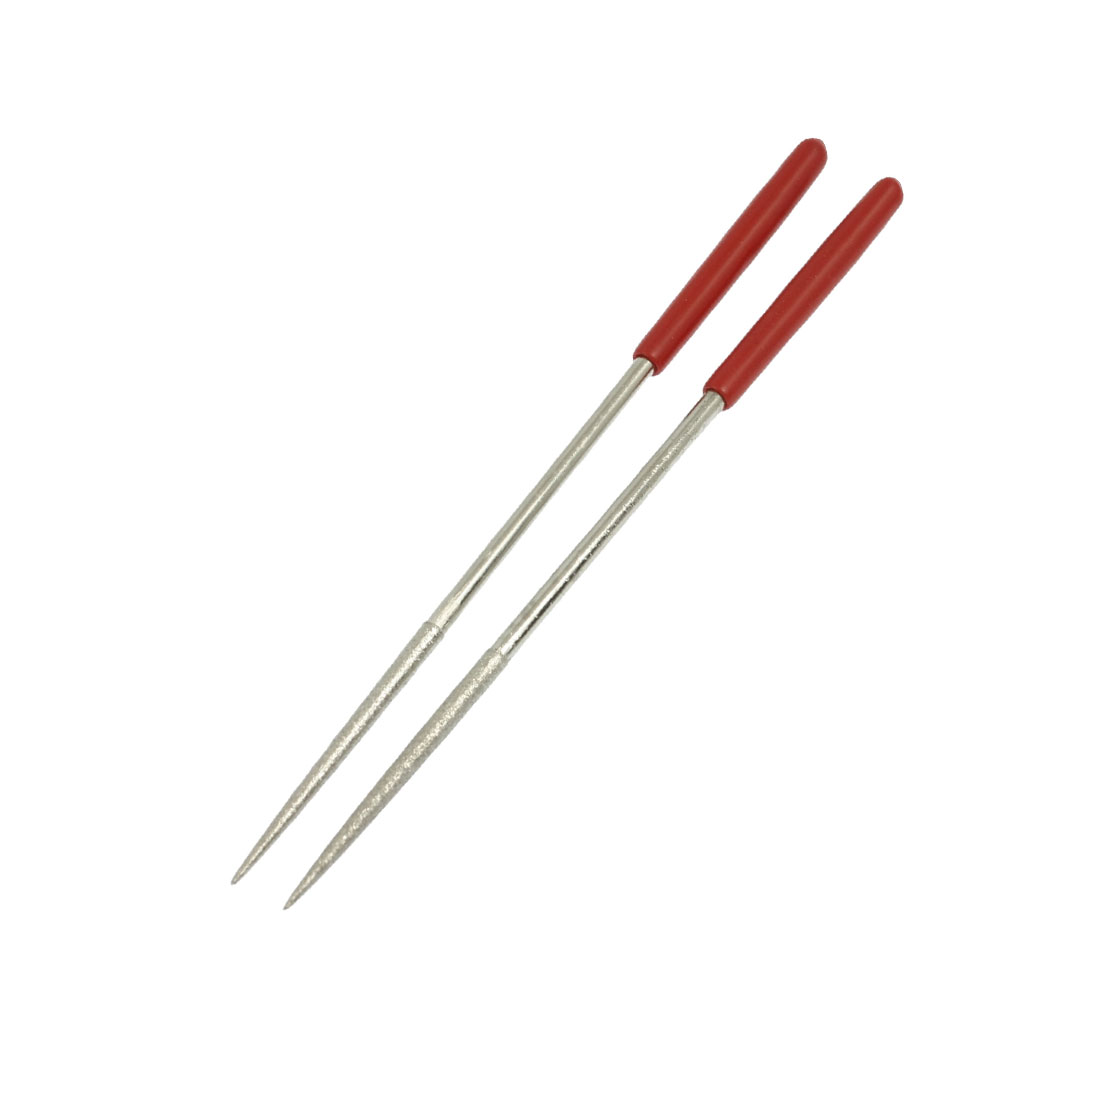 4mm x 160mm Red Handle Lapidary Jeweler Round Diamond Needle Files 2 Pcs